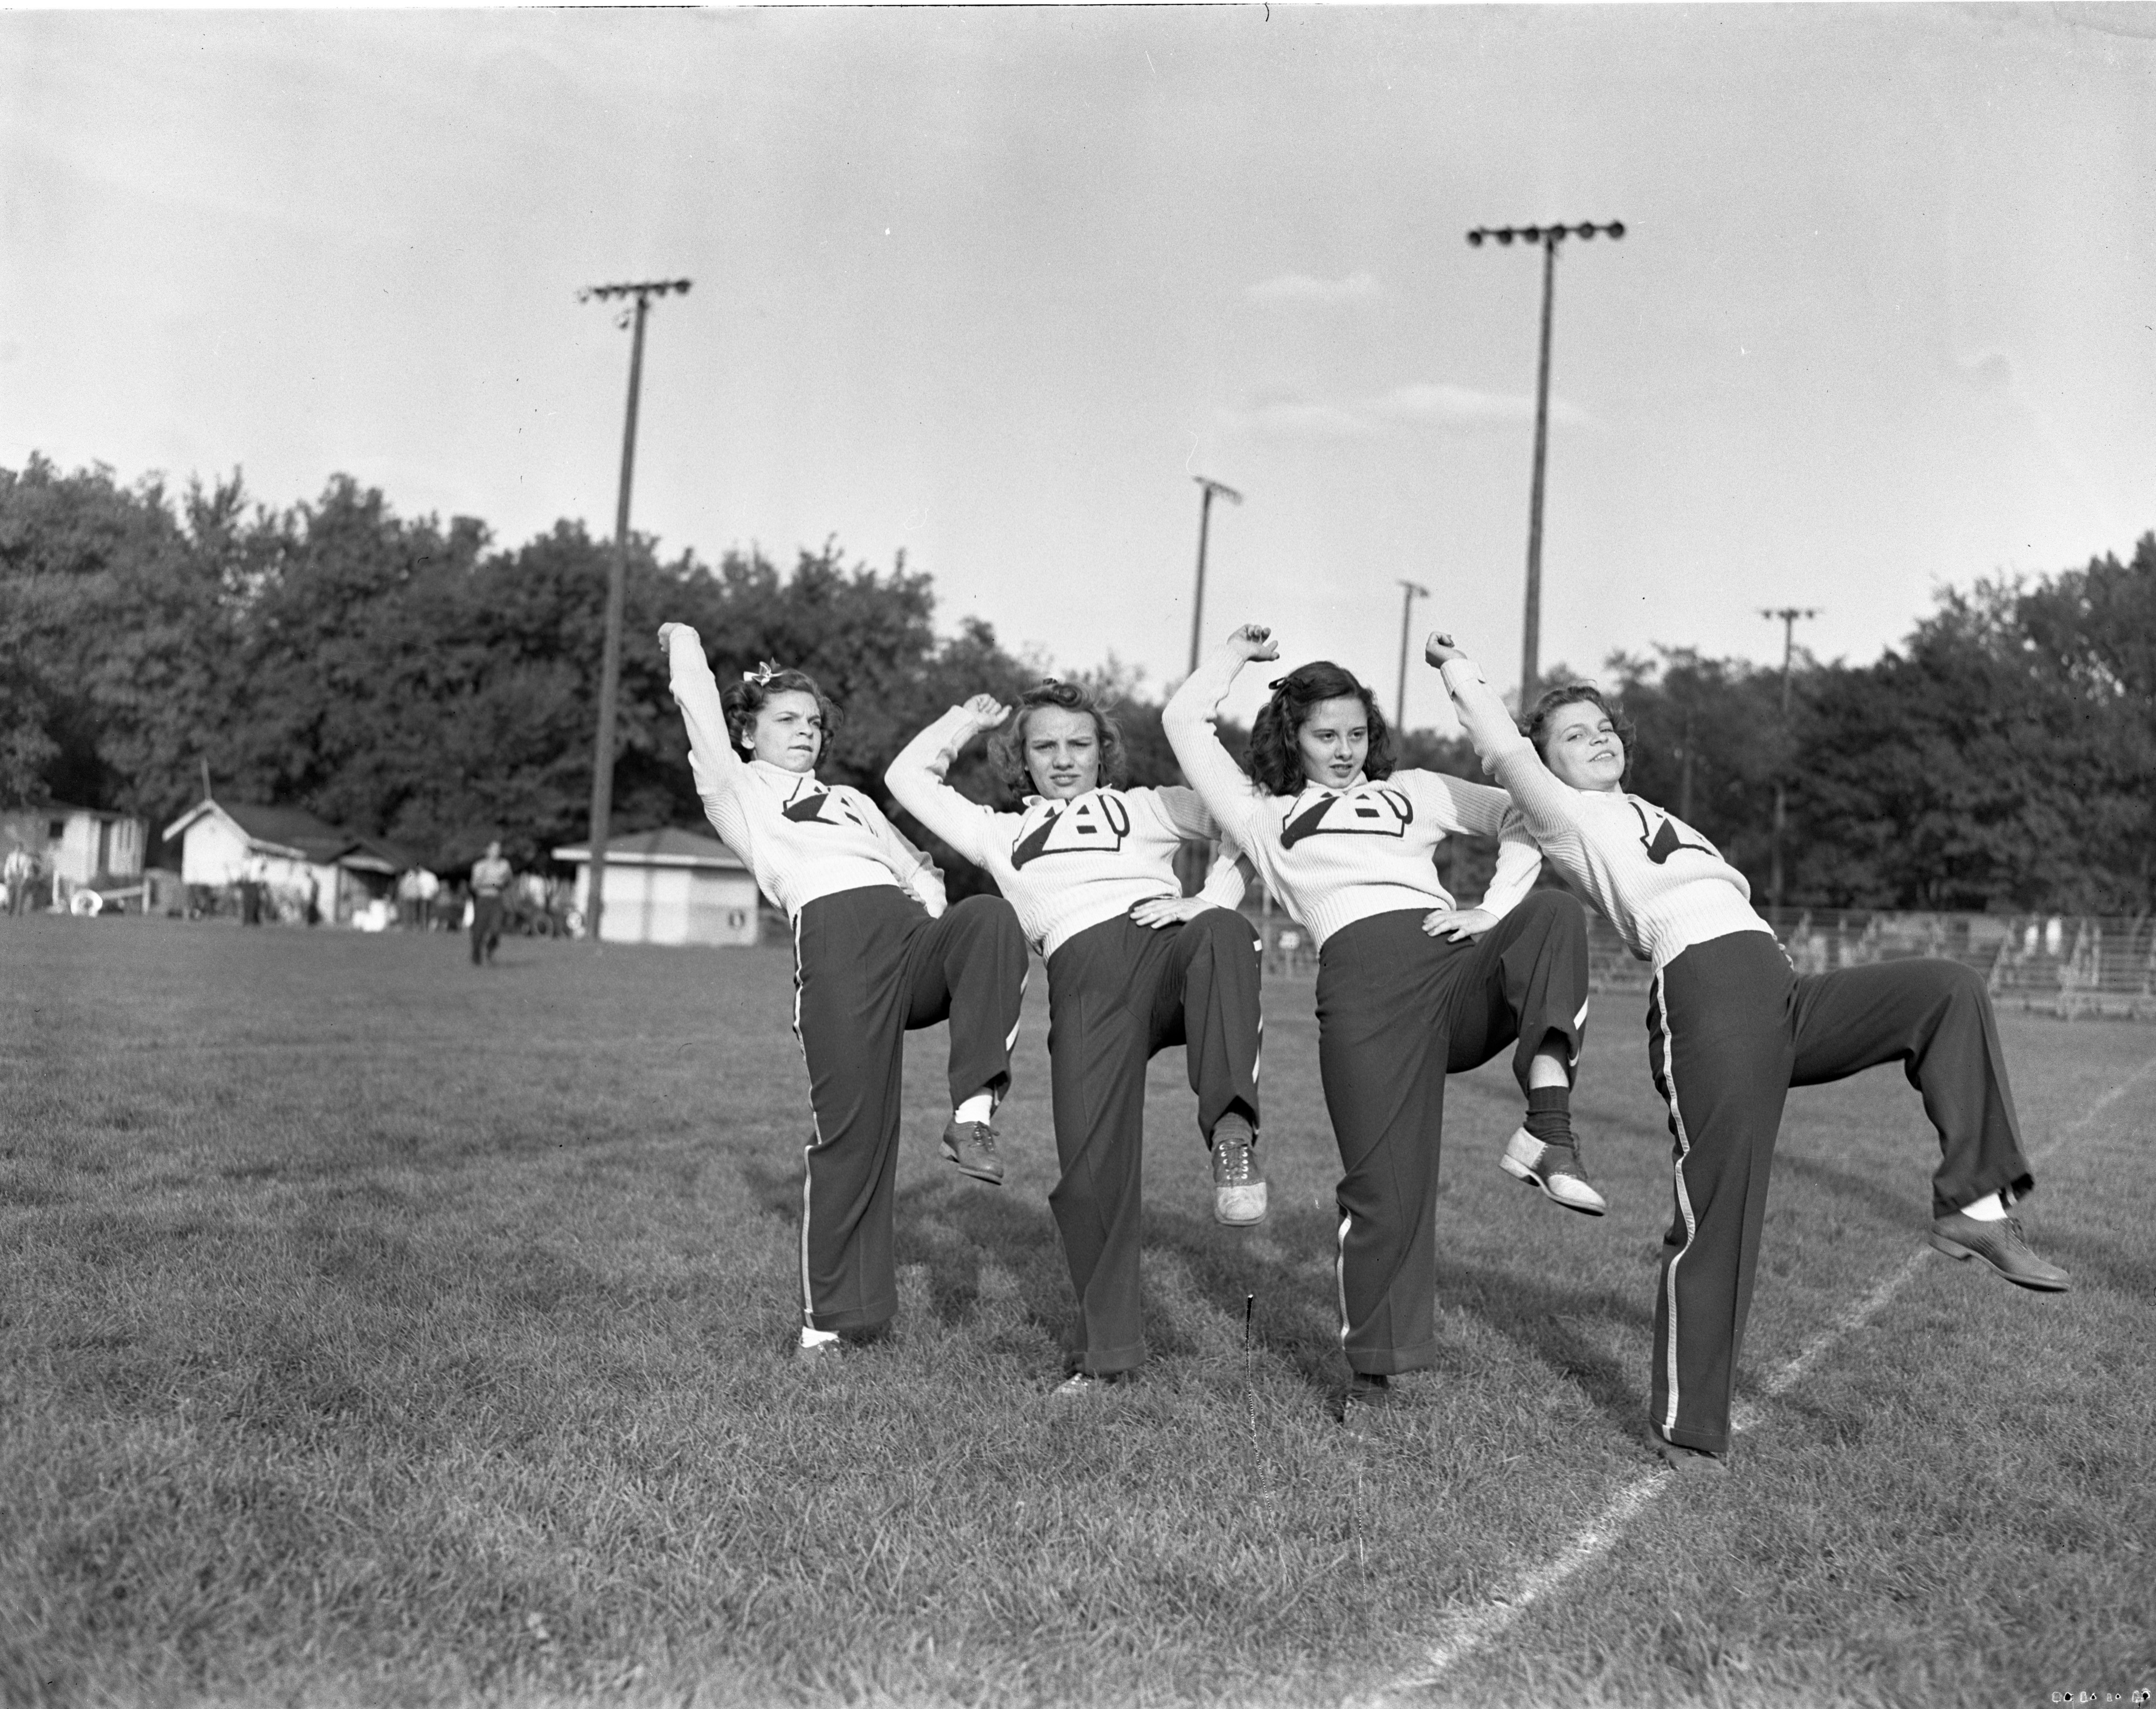 Ann Arbor High School Cheerleaders, October 1940 image